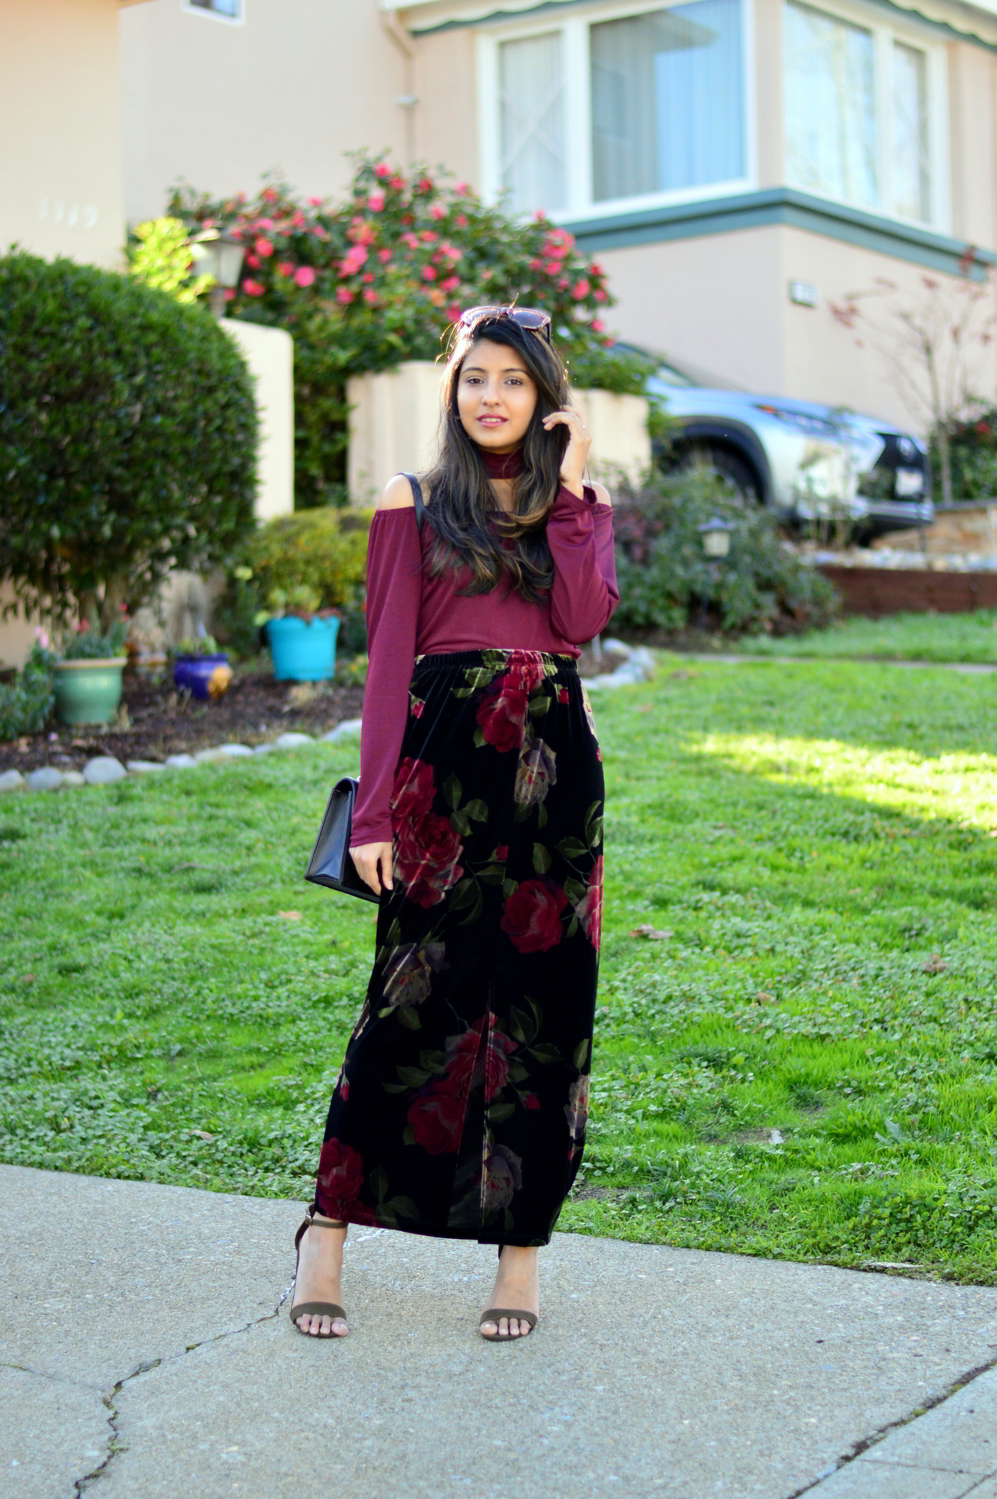 velvet-floral-skirt-choker-burgundy-top-party-outfit-NYE-blogger 3